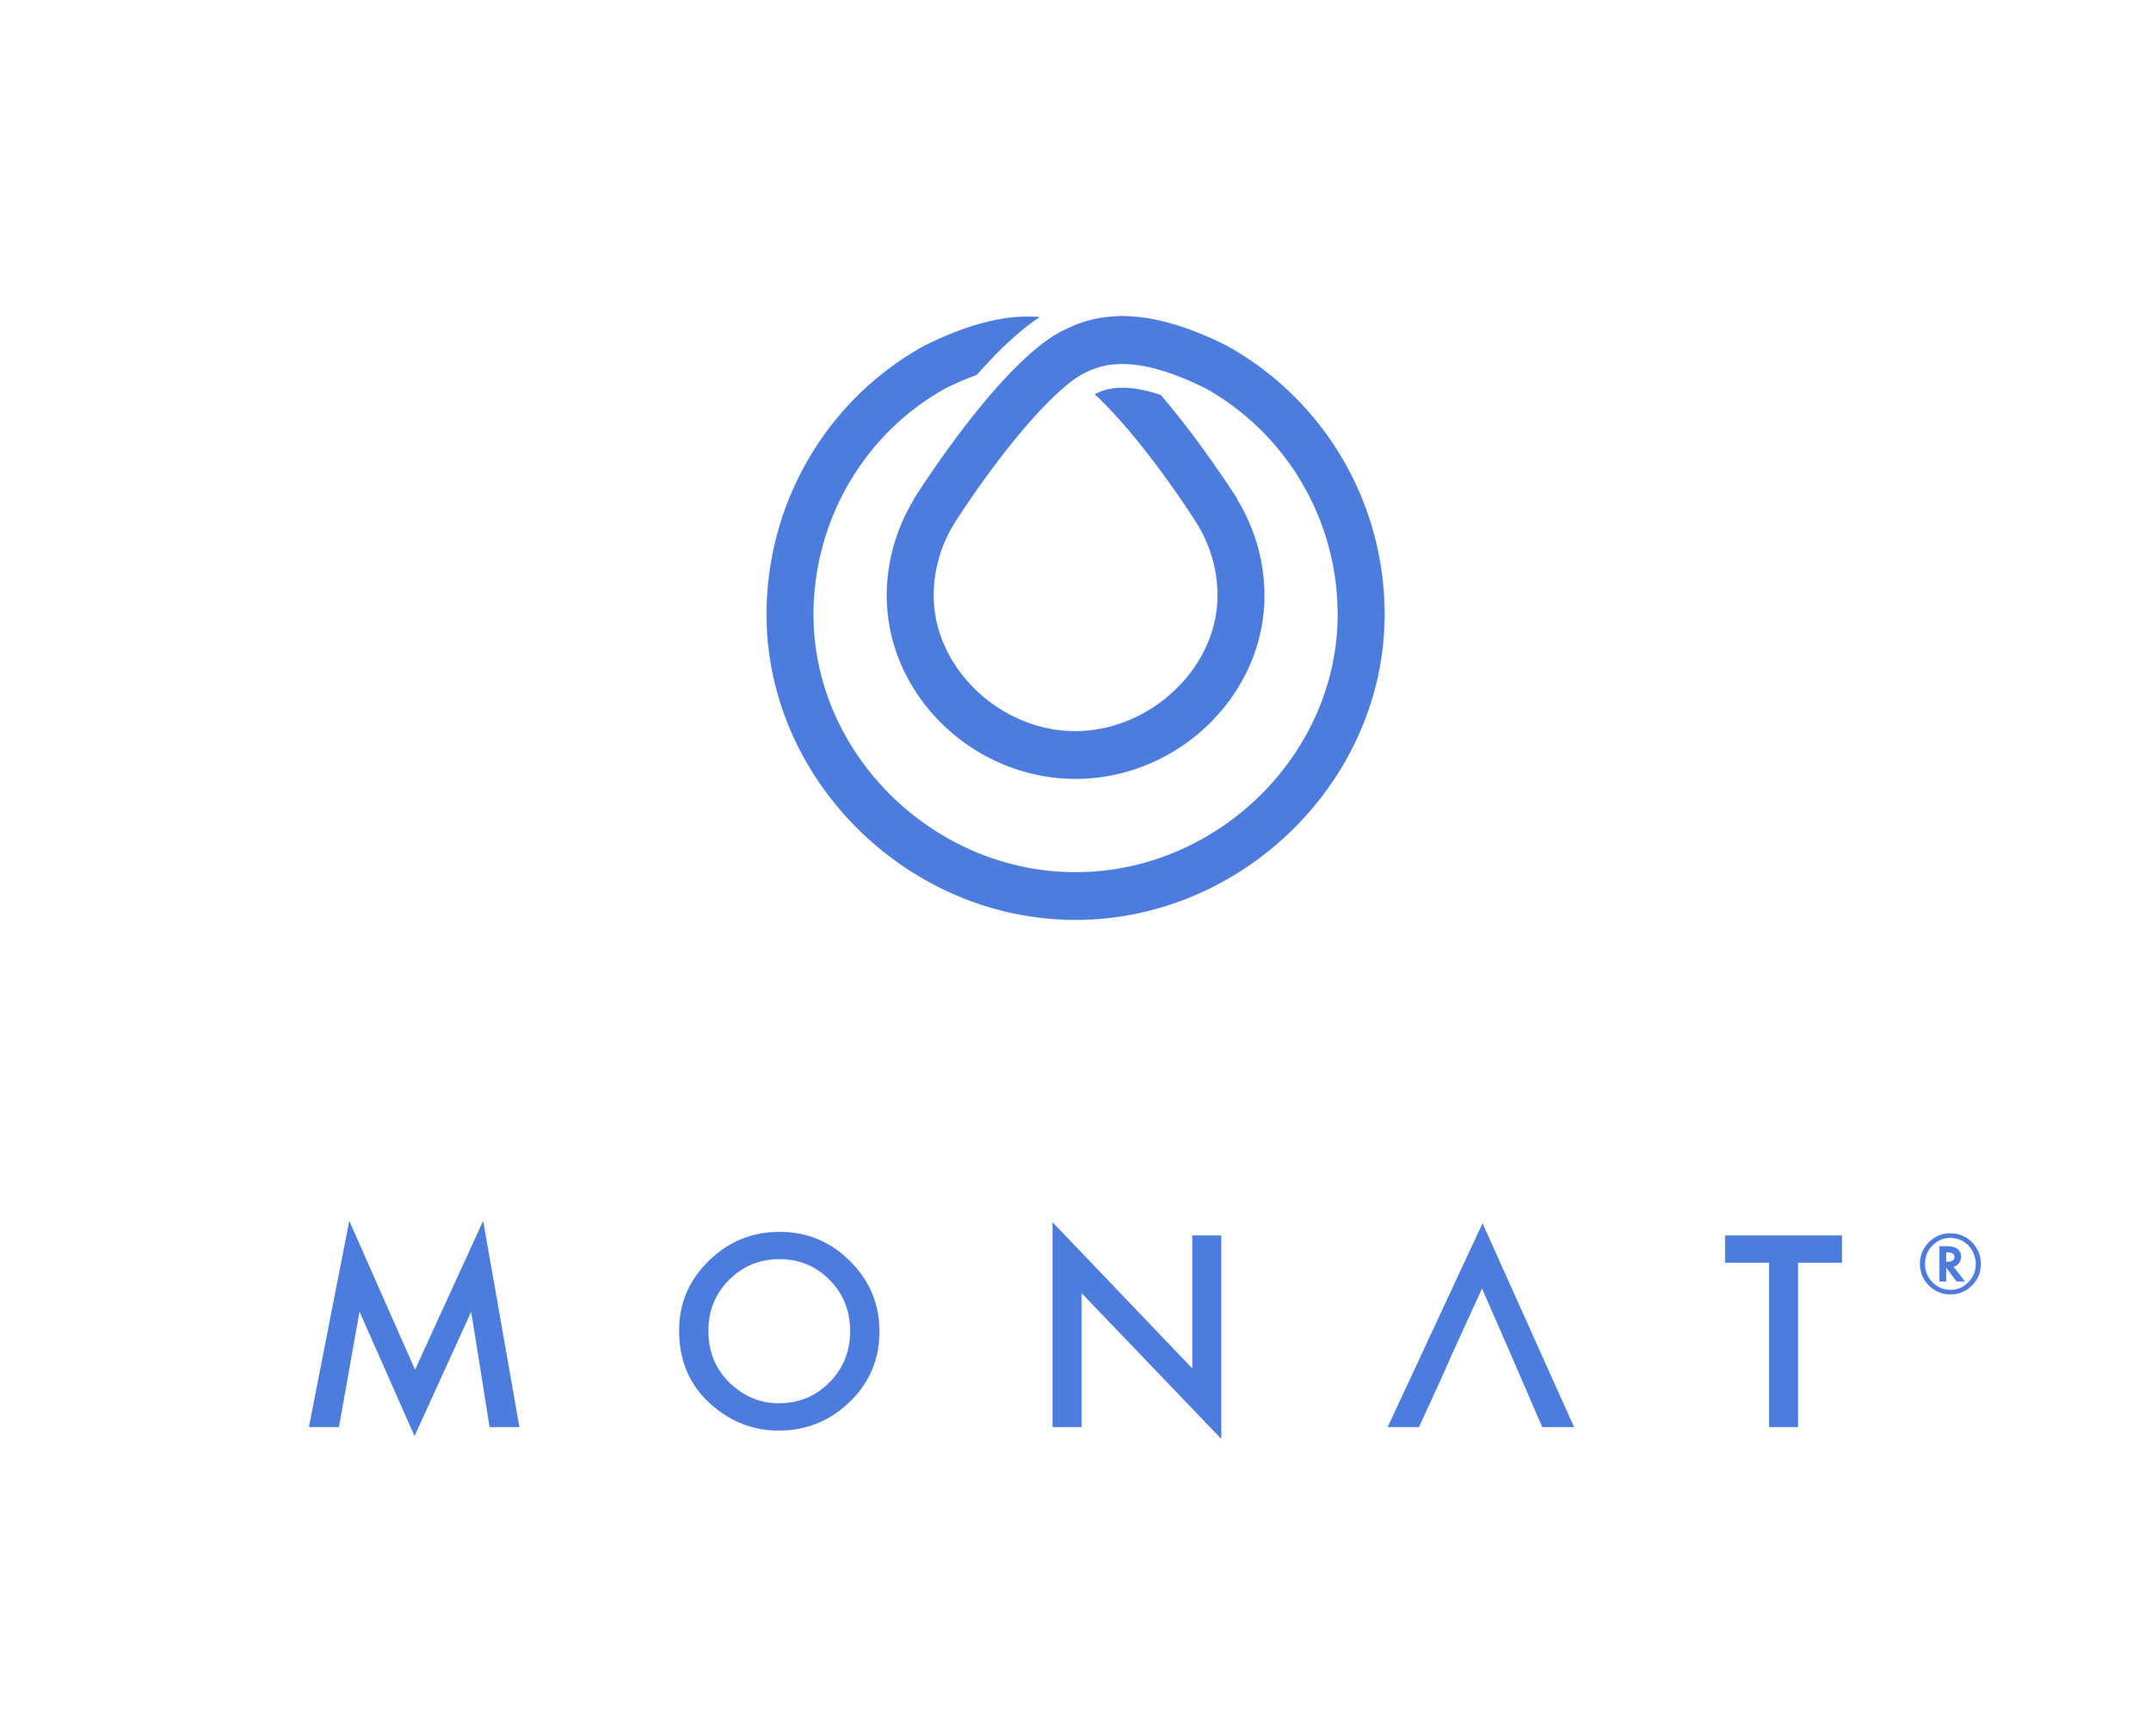 MONAT Brand Mark_Blue_Combination Mark (2).jpg